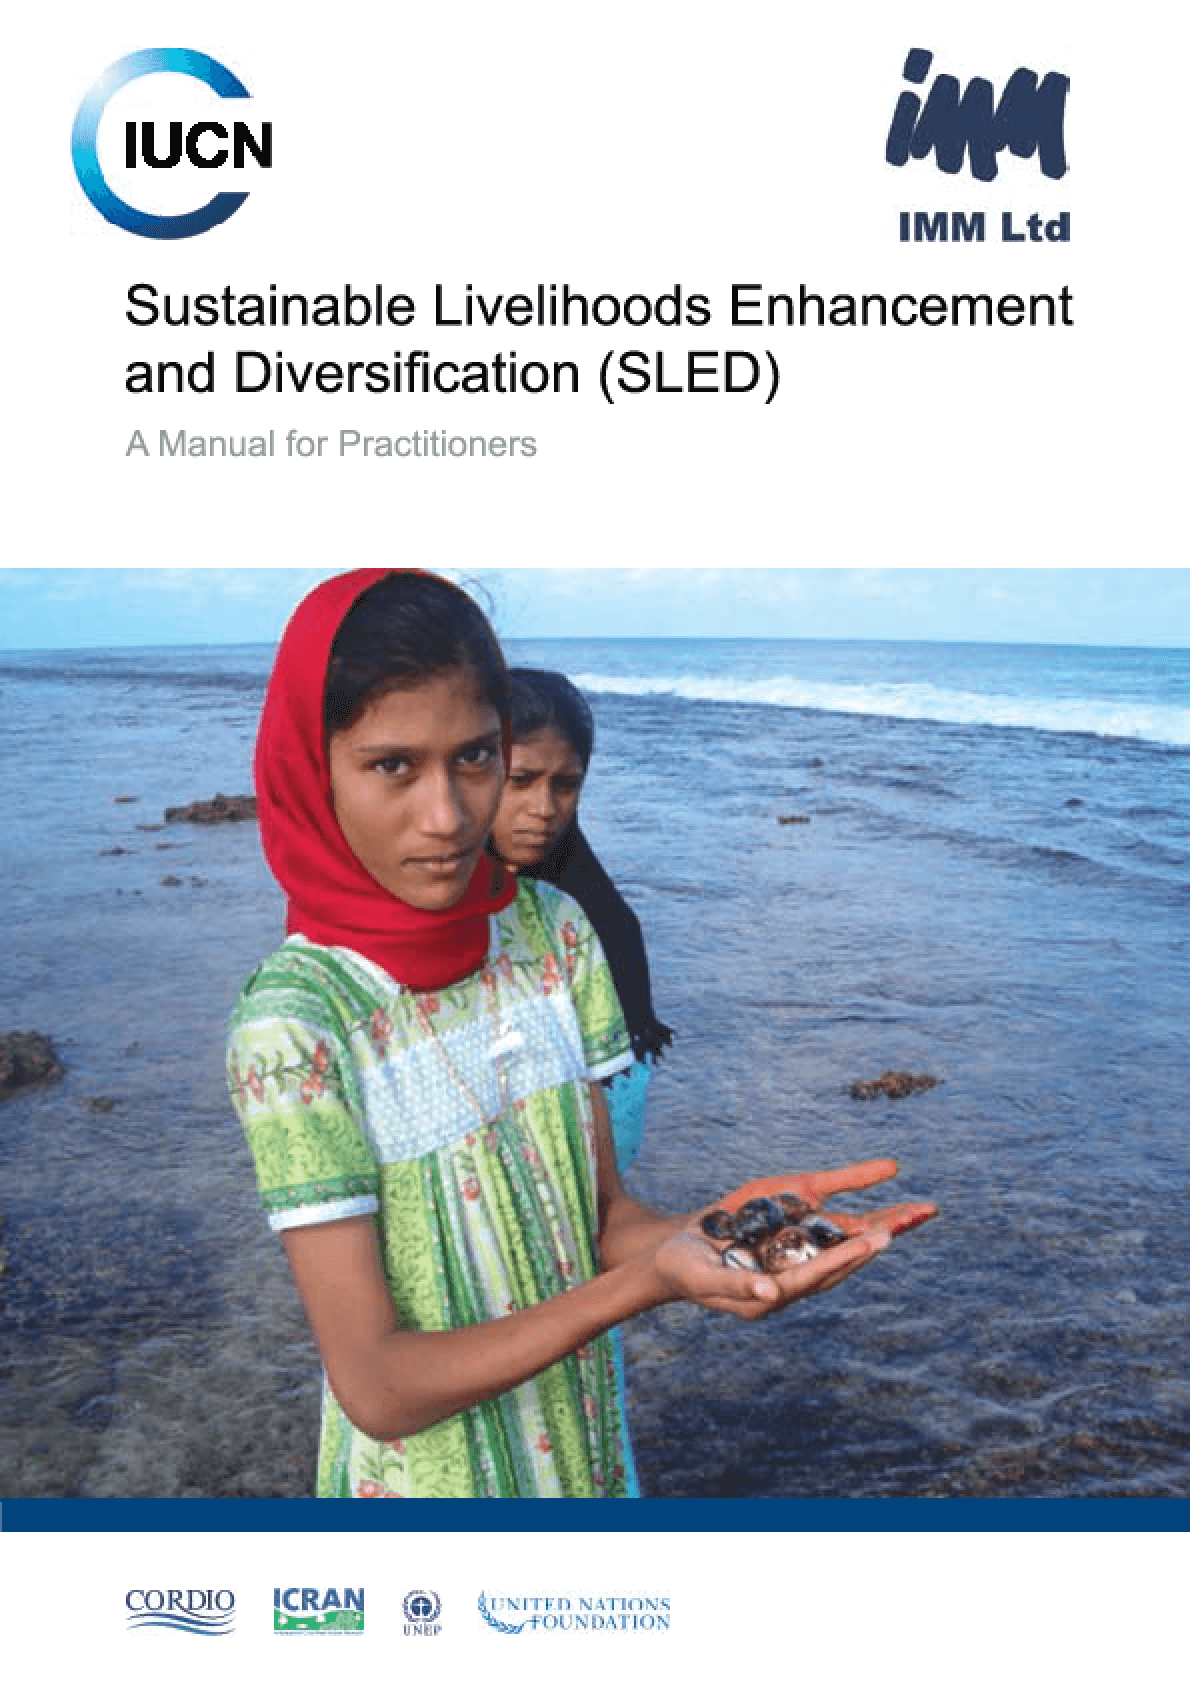 Sustainable Livelihoods Enhancement and Diversification (SLED): A Manual for Practitioners